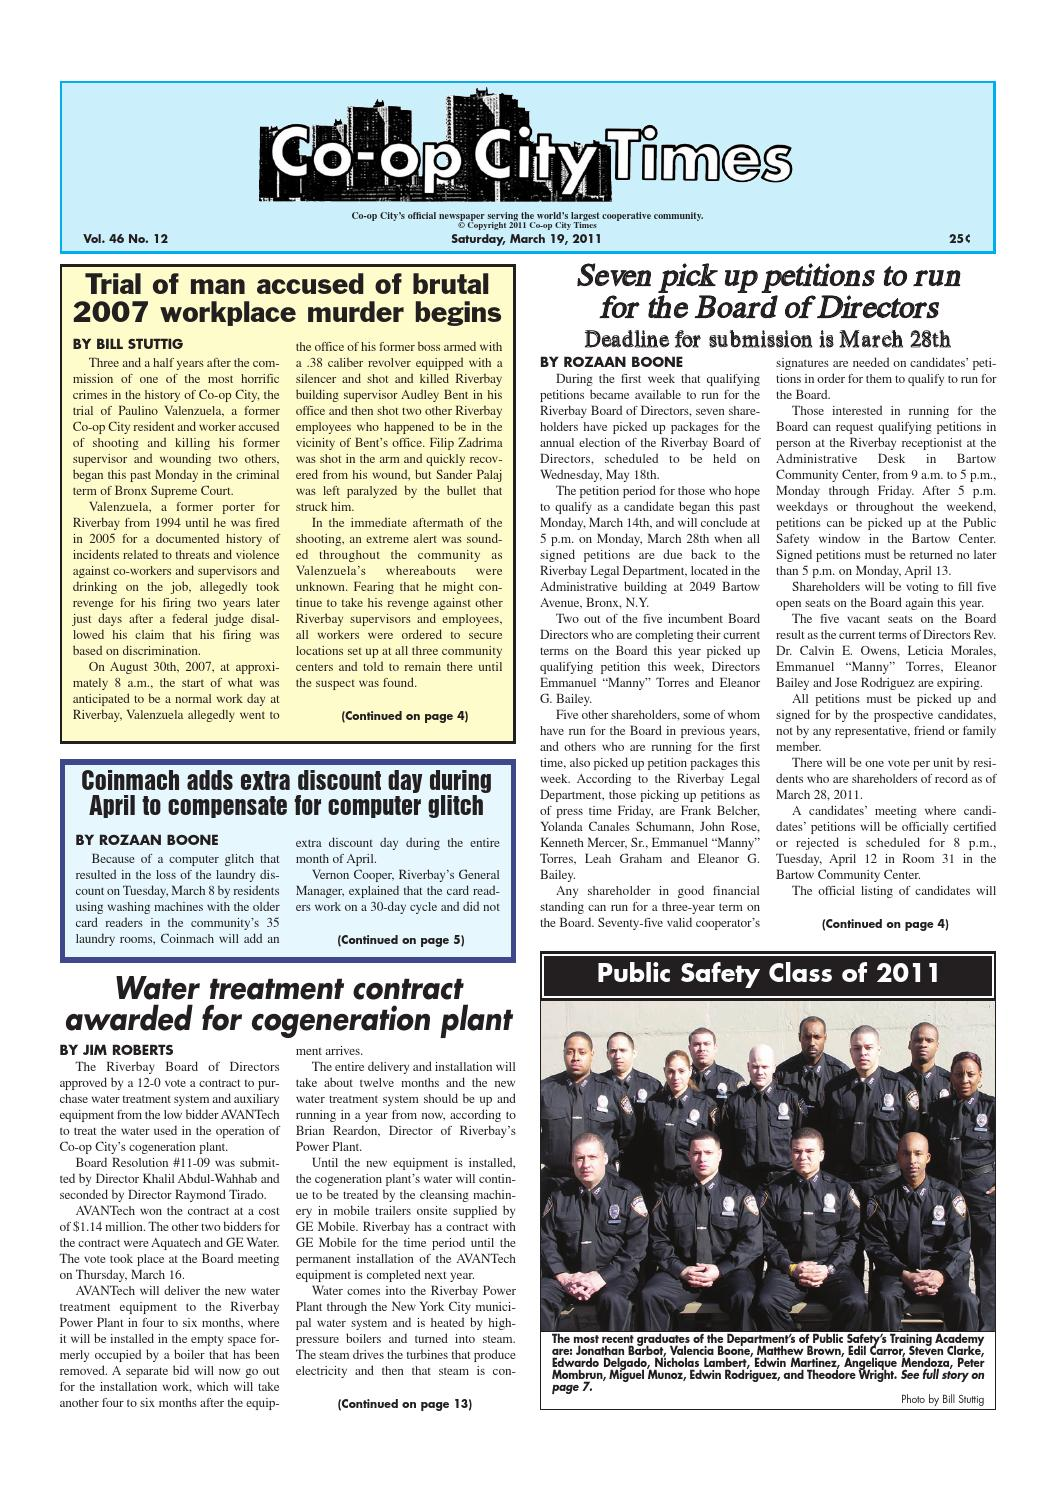 99ef337b1951 Co-op City Times 03 19 11 by Co-op City Times - issuu